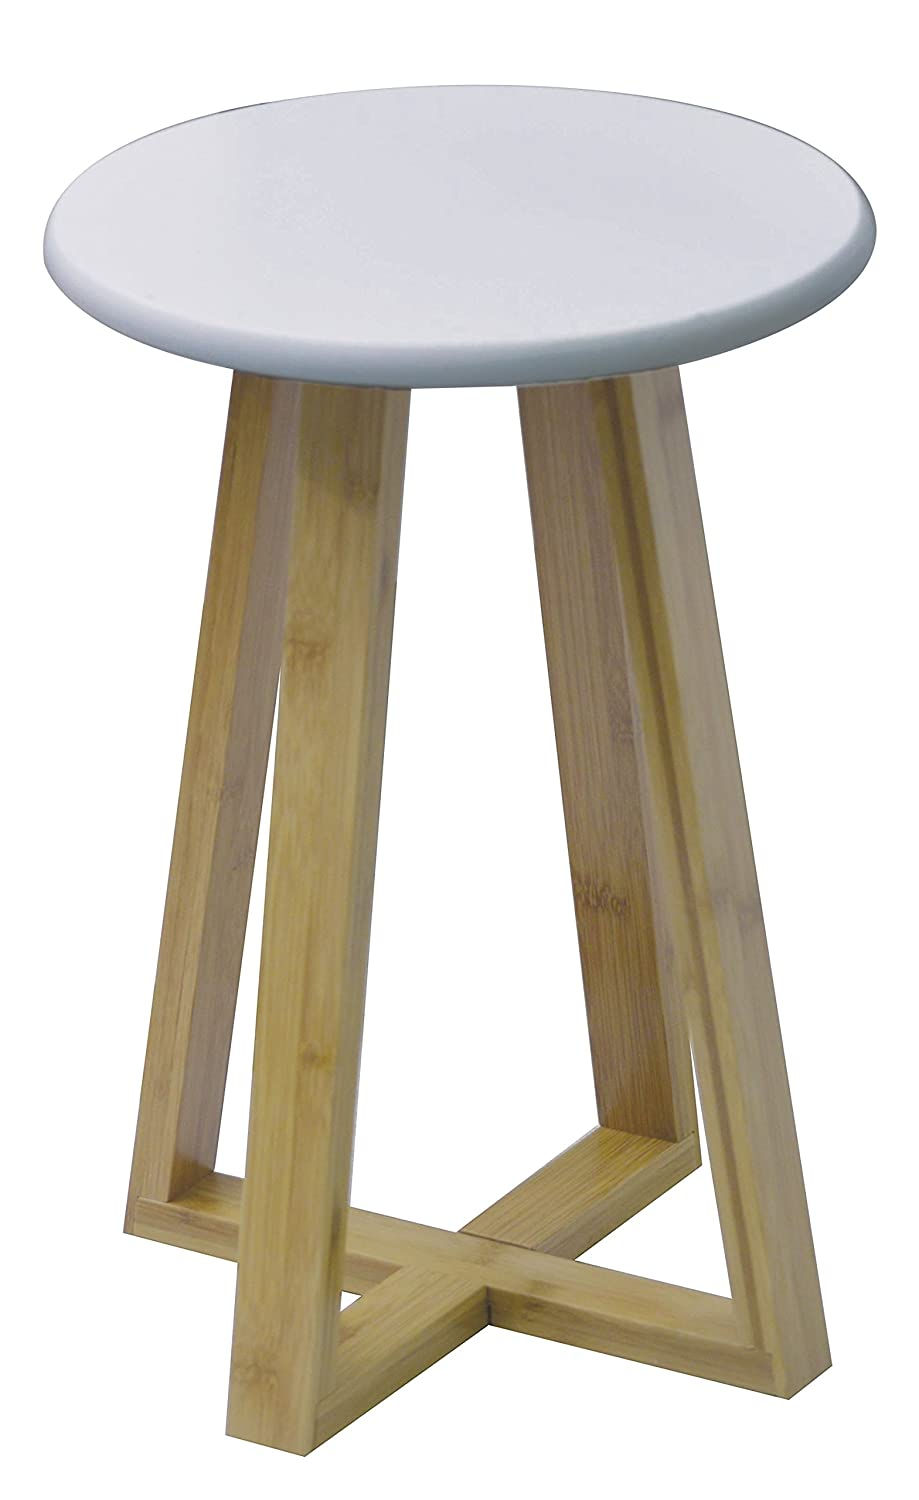 Bamboo bathroom stool - Exotic design TENDANCE